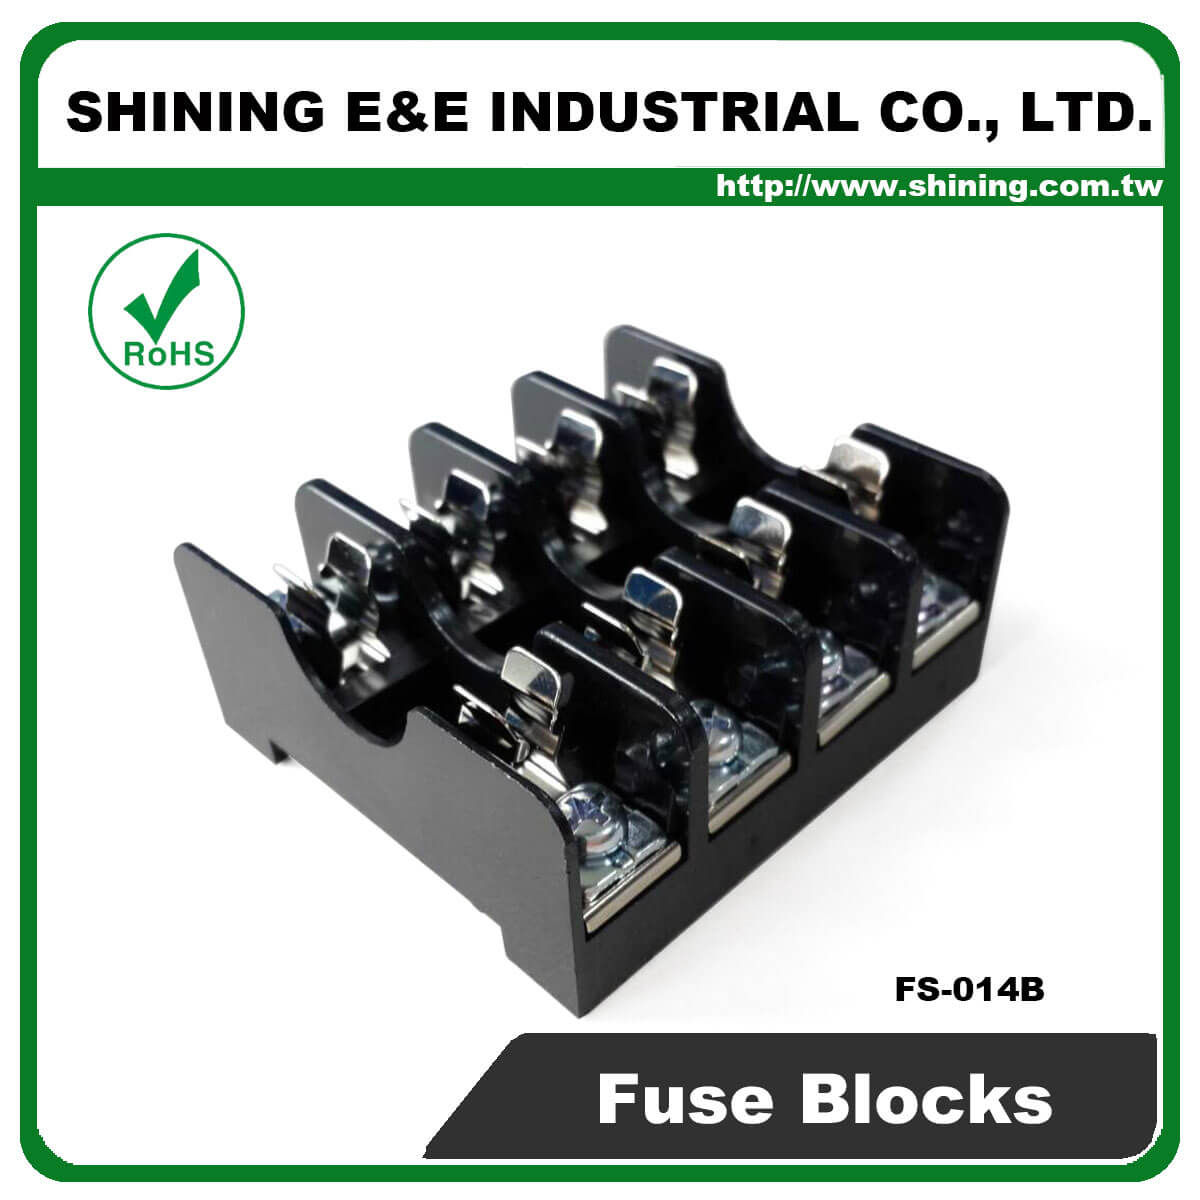 FS-014B For 6x30mm Fuse Din Rail Mounted 600V 10A 4 Way Fuse